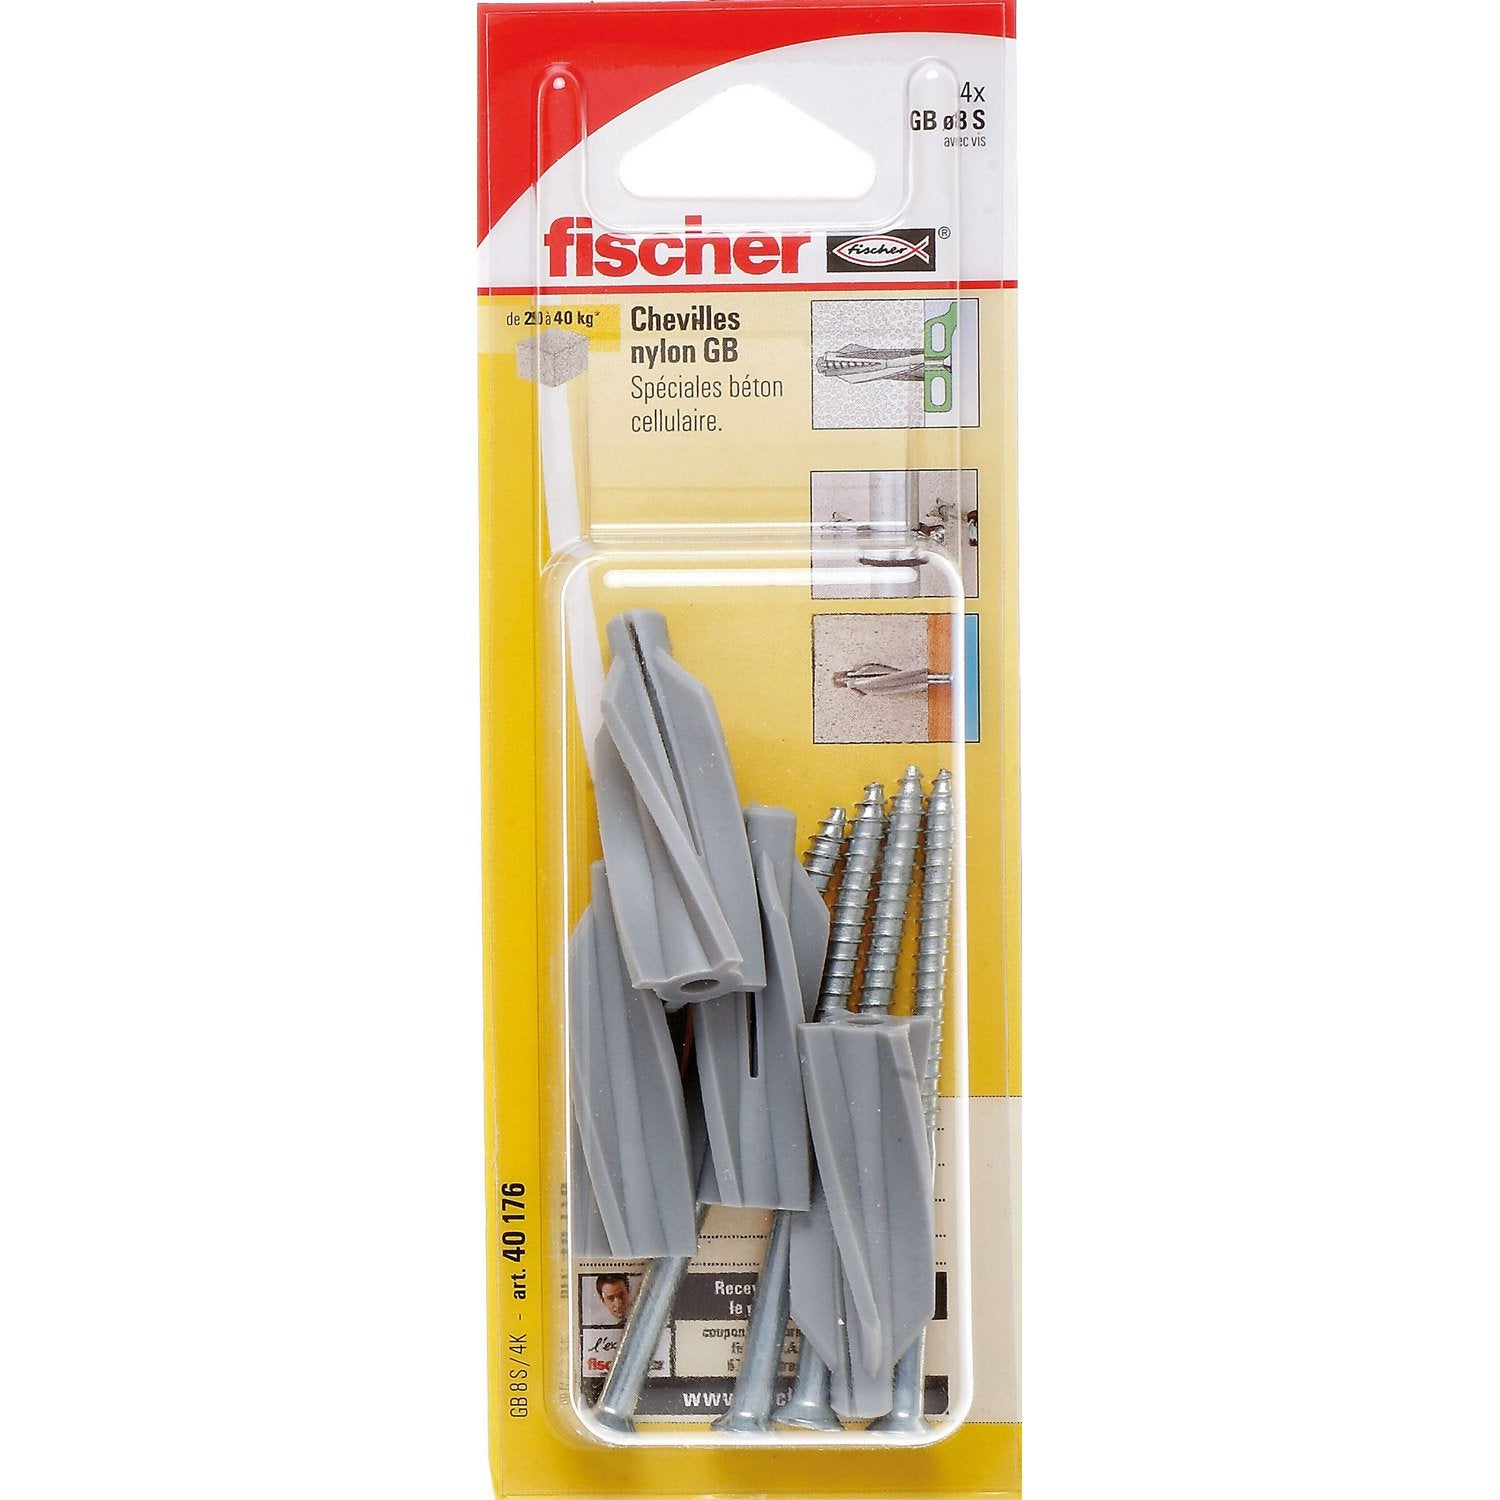 Lot de 4 chevilles vis expansion gb fischer diam 8 x mm leroy merlin - Cheville a frapper leroy merlin ...